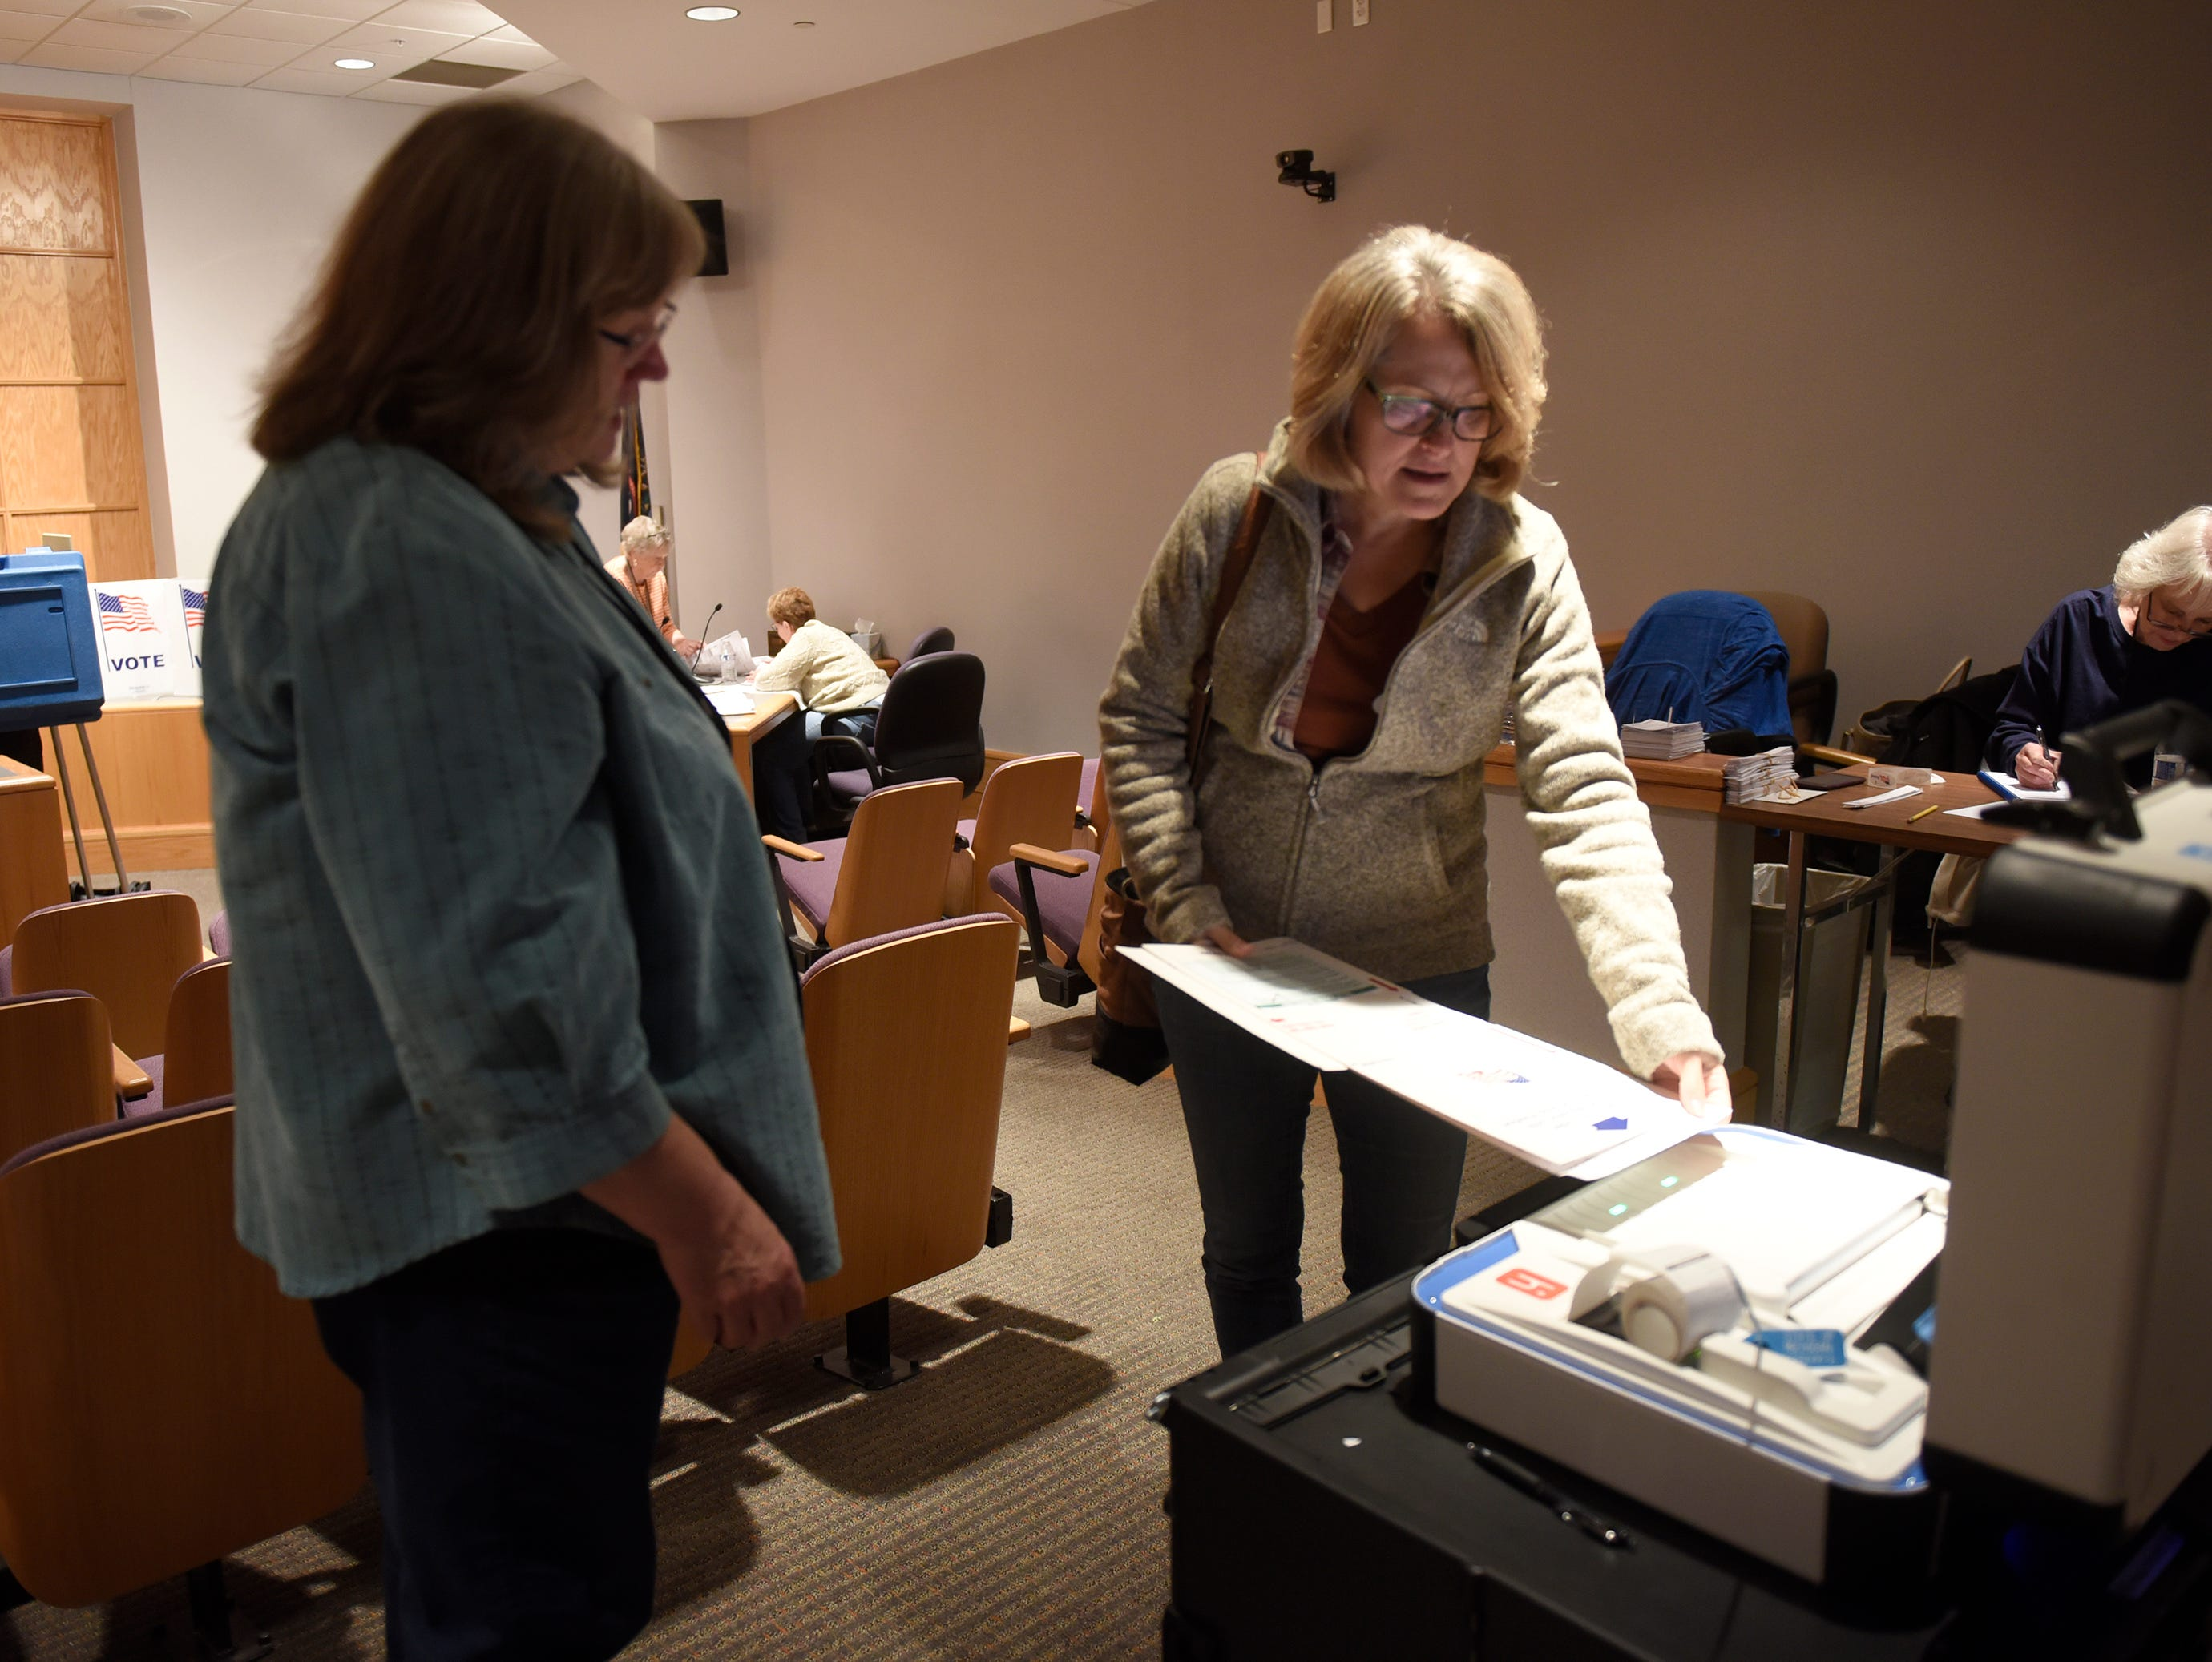 Precinct worker Marty Connell helps Julie Walker place her ballot in the counting machine at the South Lyon City Hall on election day Nov. 6, 2018.